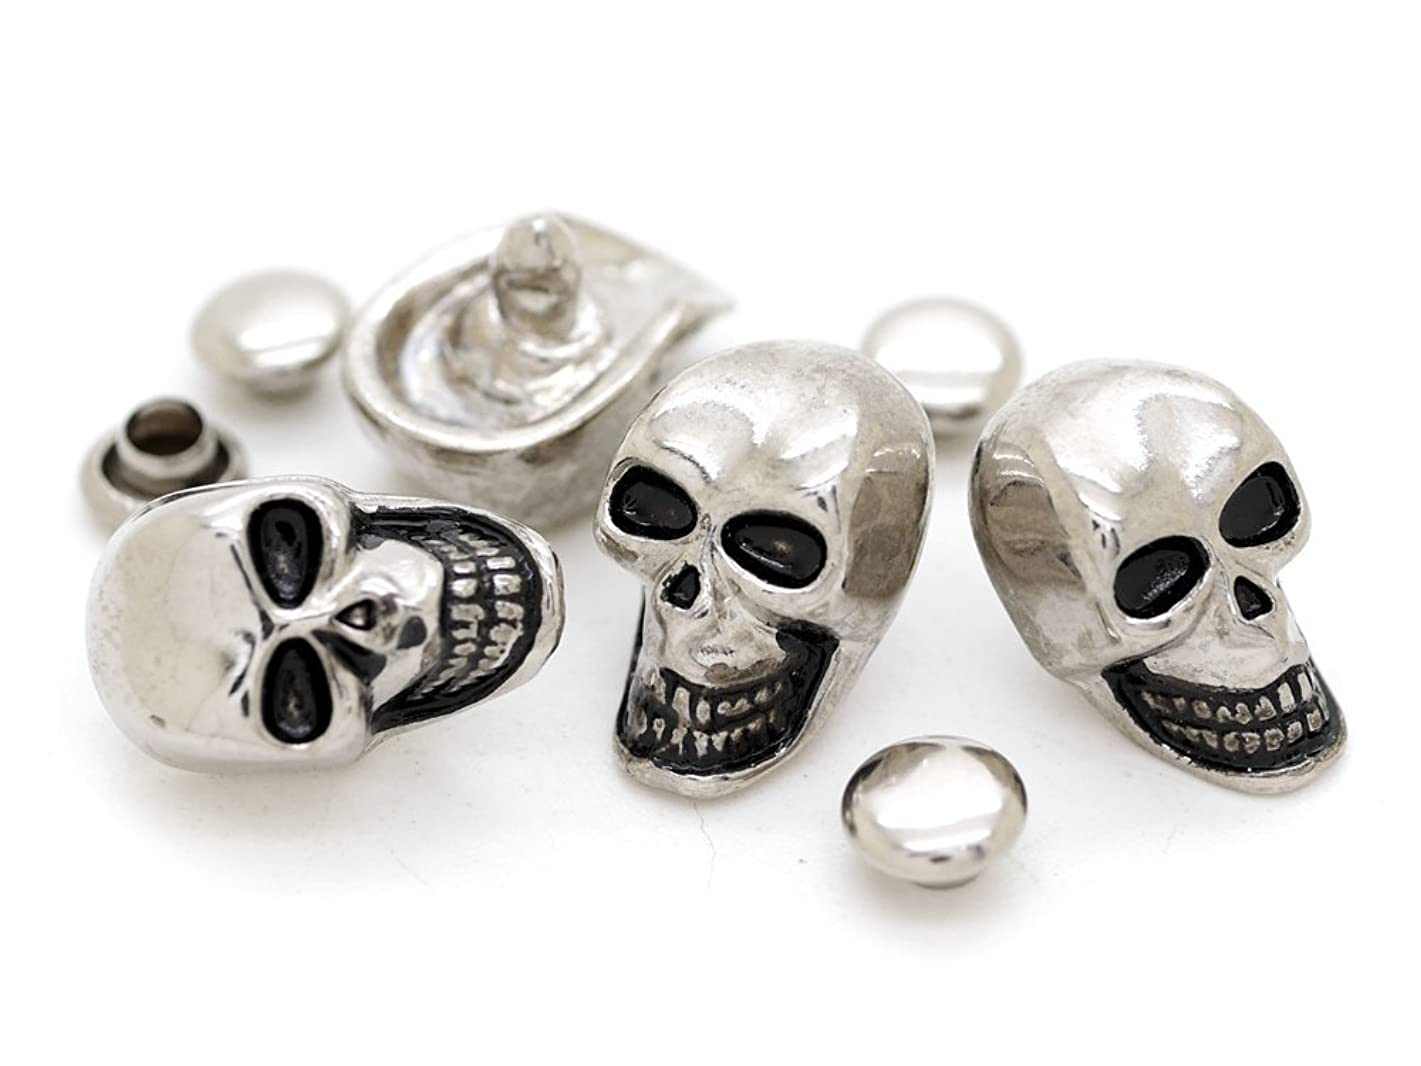 CRAFTMEmore Skull Decorative Rapid Rivet Studs for Bracelets Bags Belts Leathercraft 13x22MM Pack of 5 HQR184 (Silver)